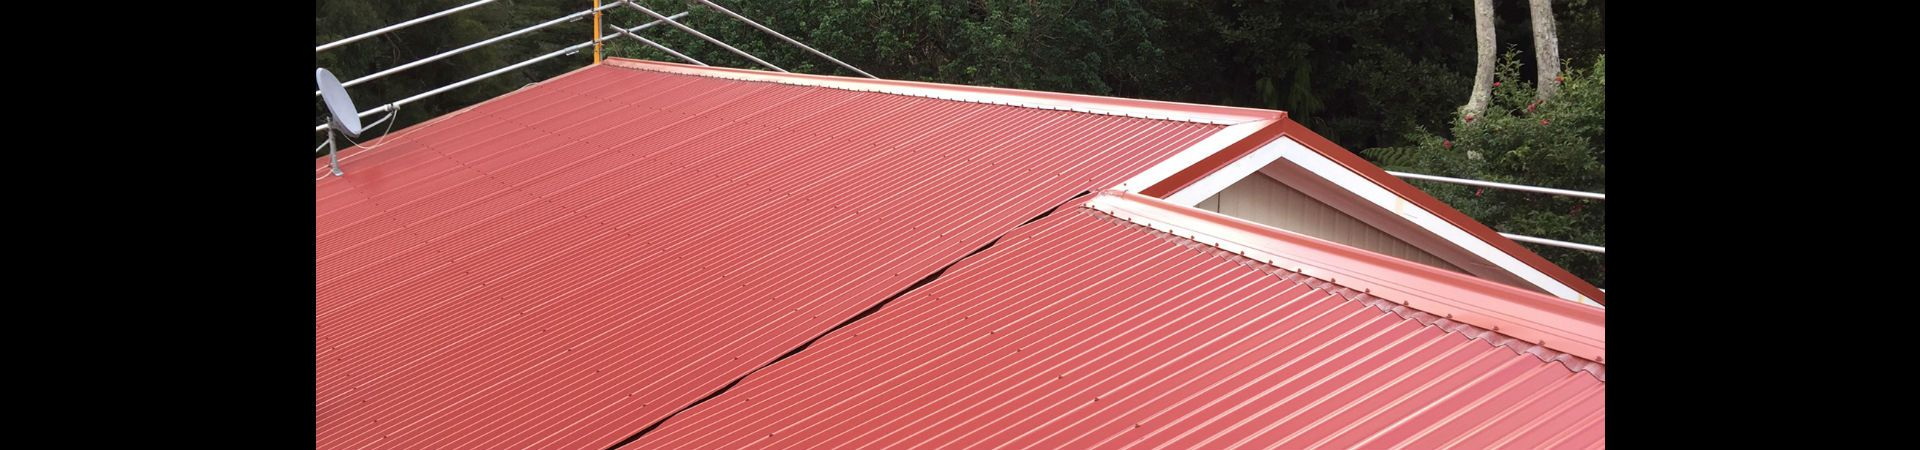 Certified Roofing Specialist Long Run Roofing Contractor Roof Repairs New Build In Auckland